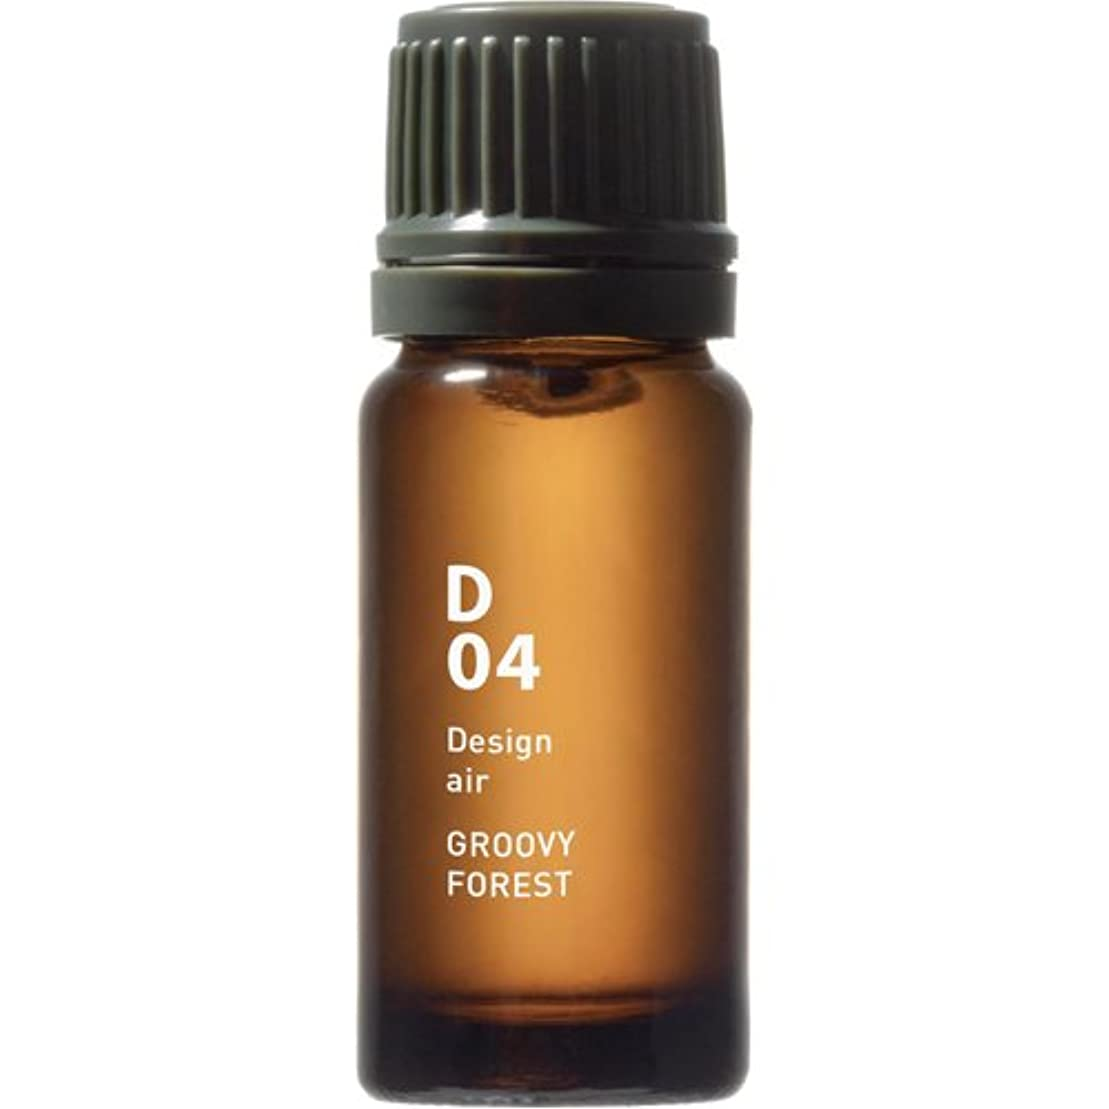 D04 GROOVY FOREST Design air 10ml